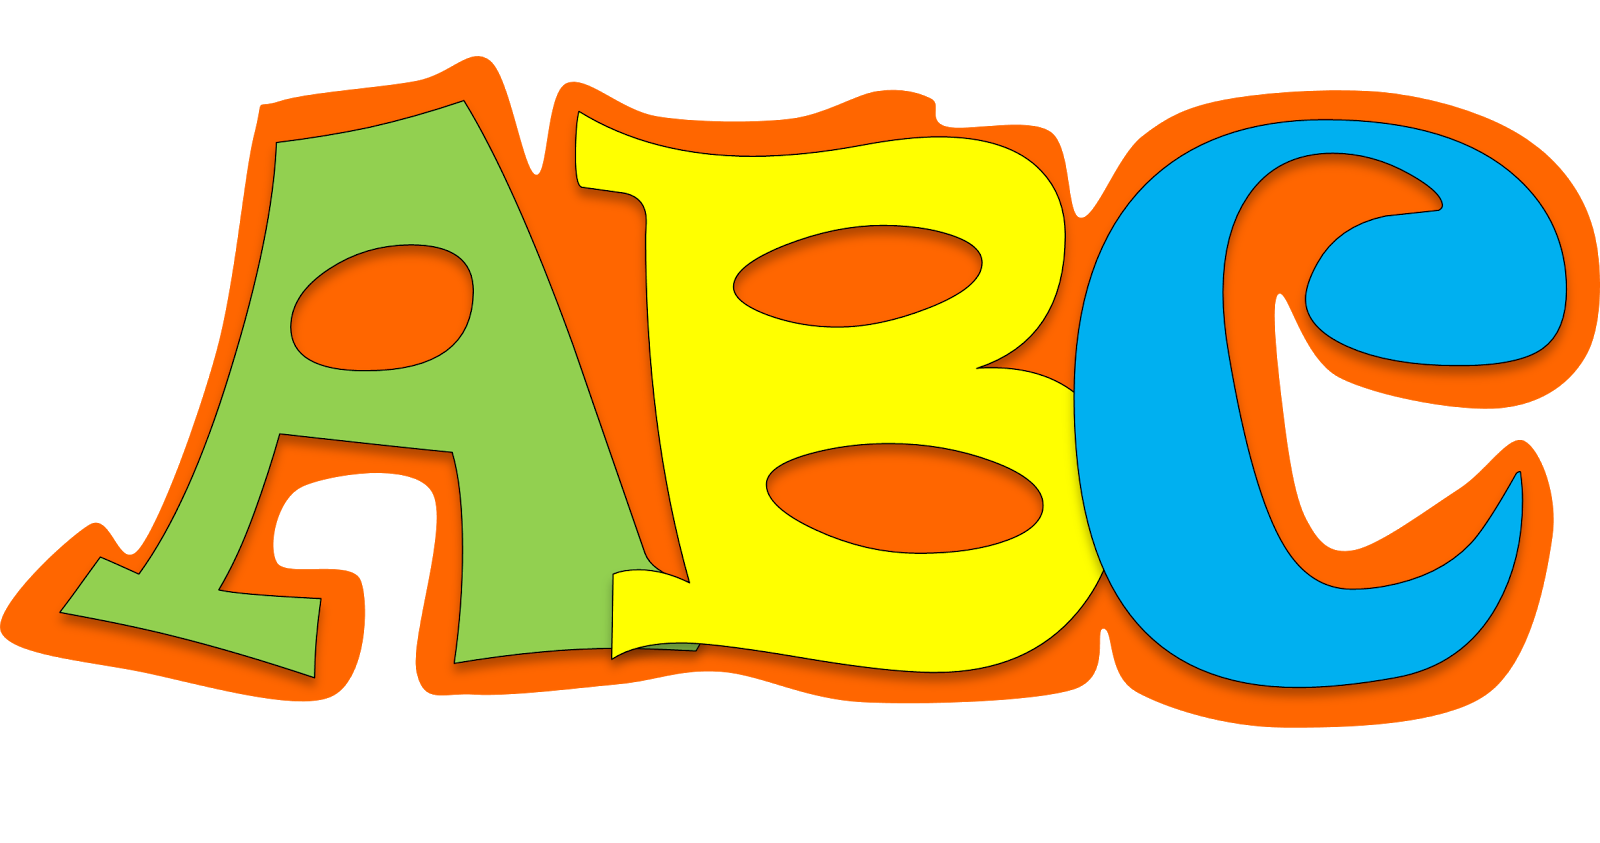 jpg library Clipart abc. Clip art images illustrations